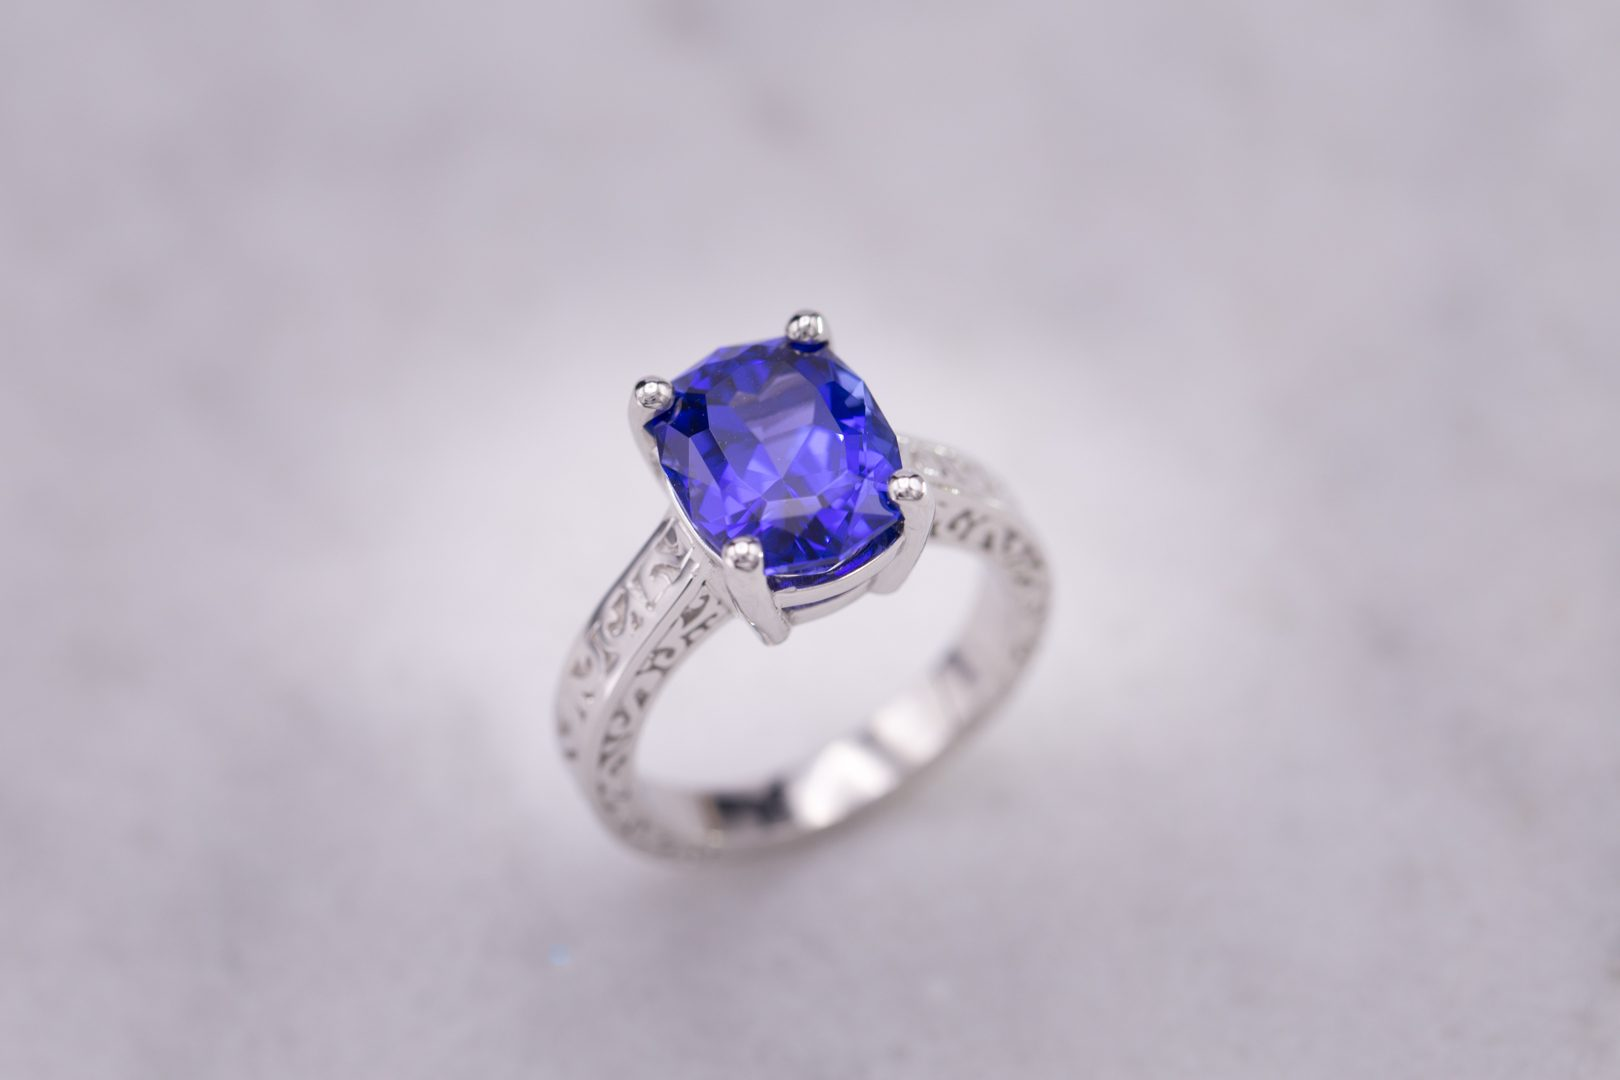 sapphire rings does diamond how average for ring much wedding a inspirational of cost